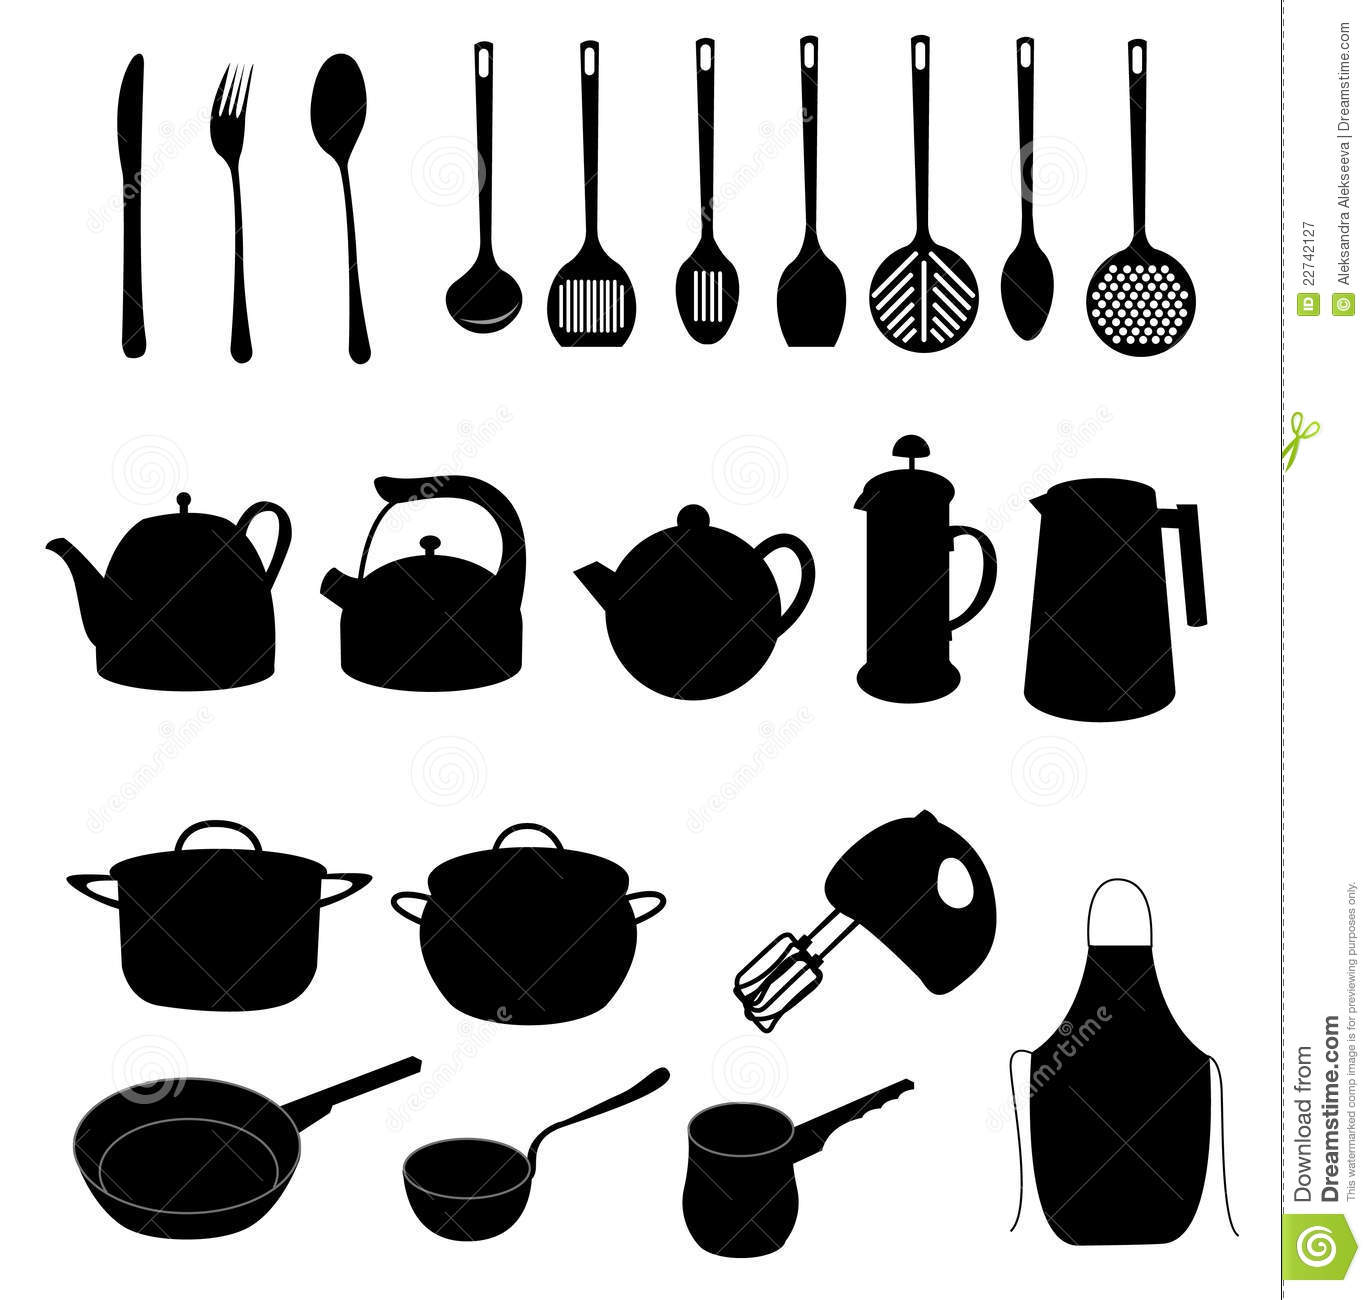 Many Different Dishes And Kitchen Objects Stock